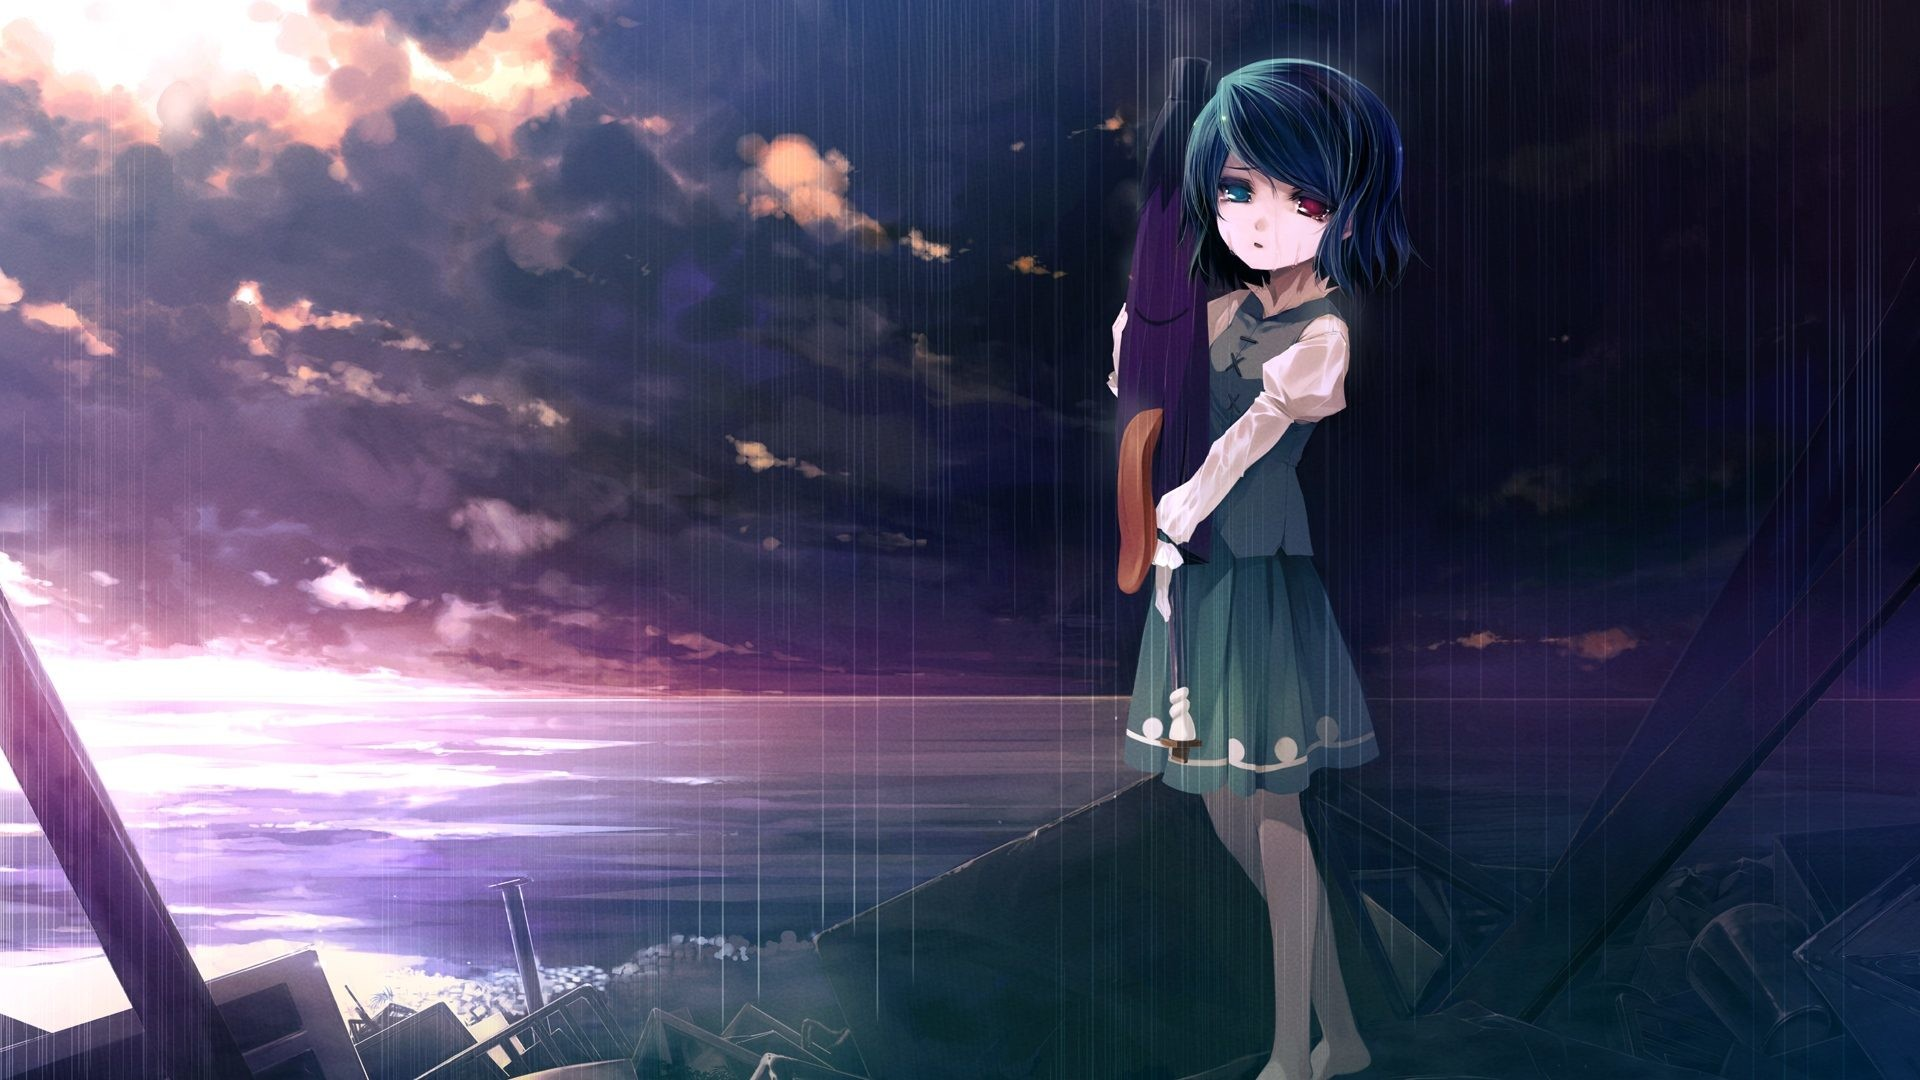 Res: 1920x1080, Download Anime HD Wallpapers Background Image girl sad sky sea debris  sunset 12049